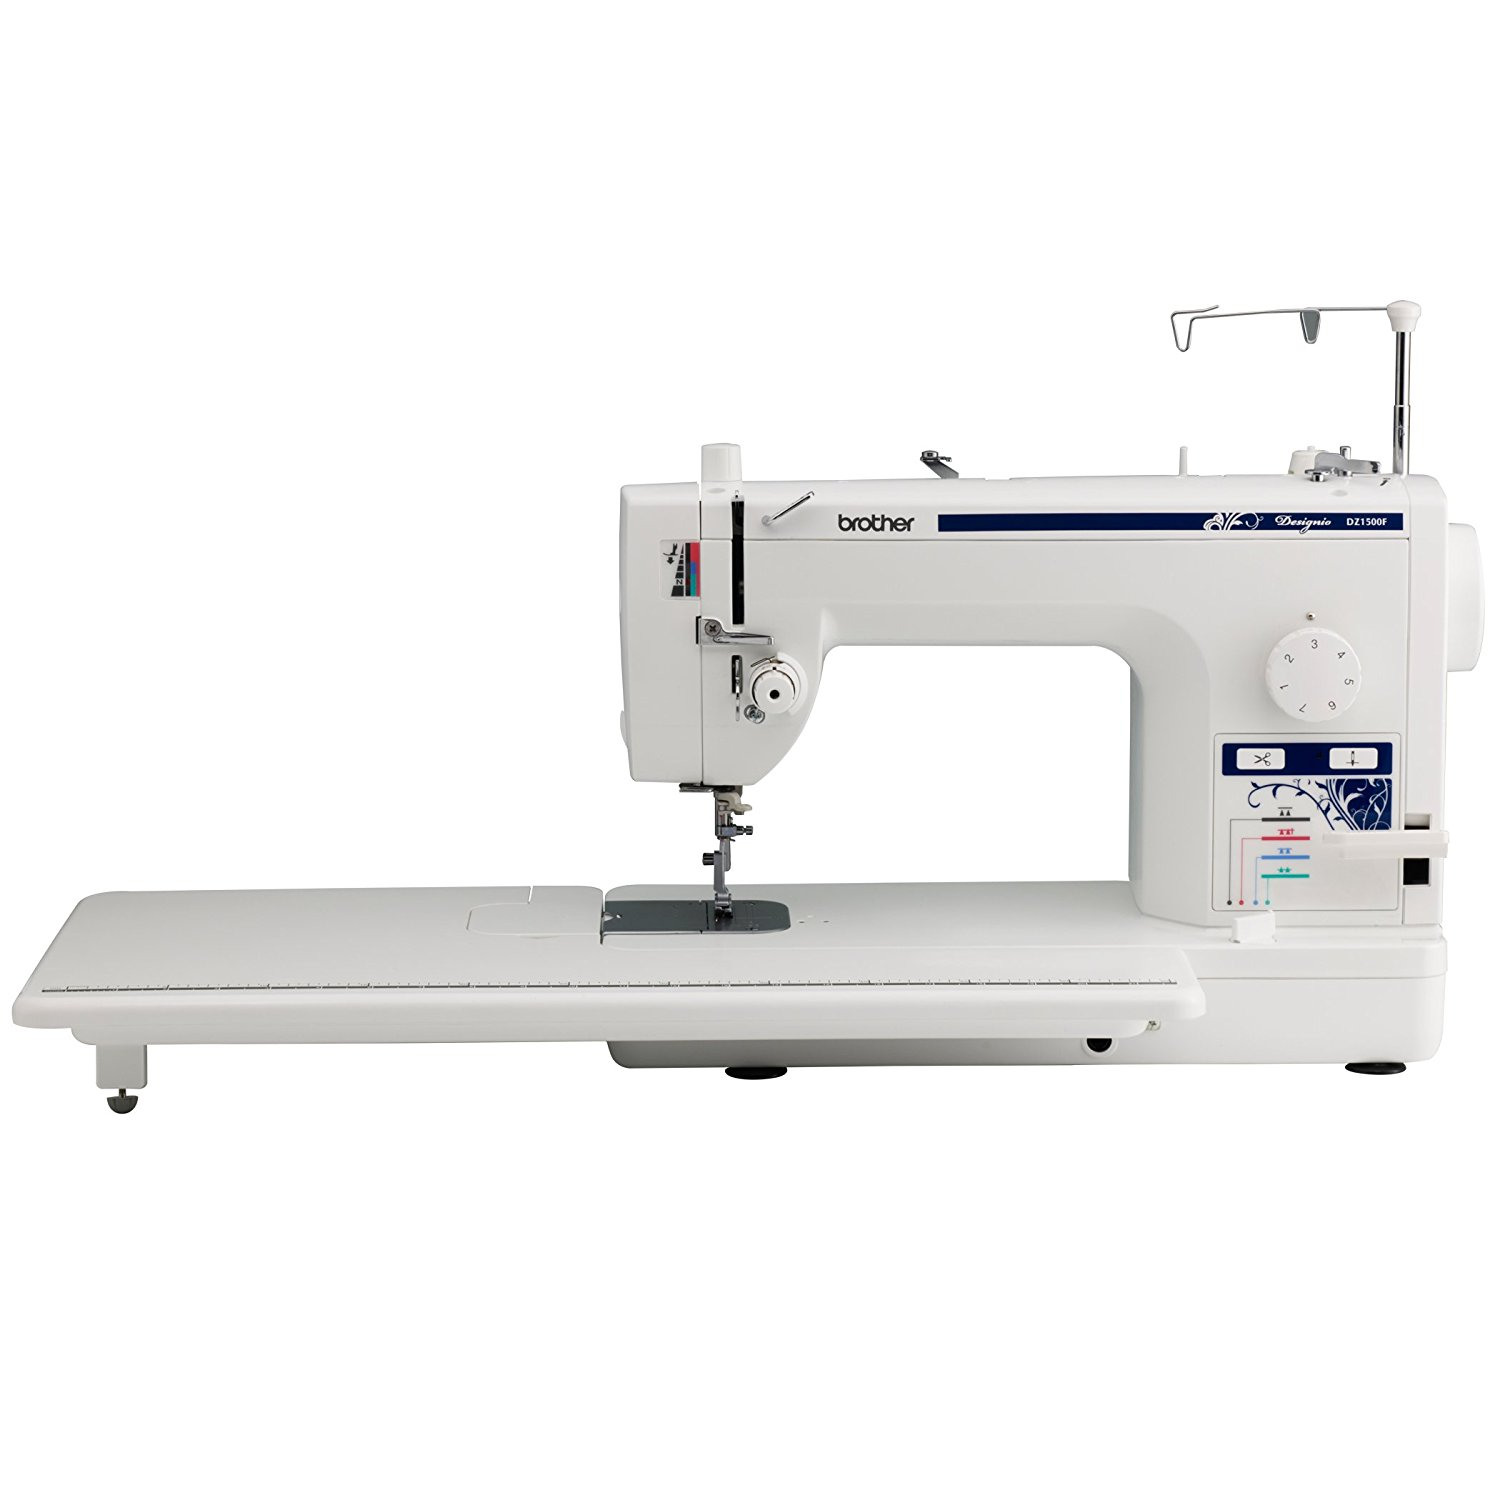 Rating of sewing machines: review of the best models